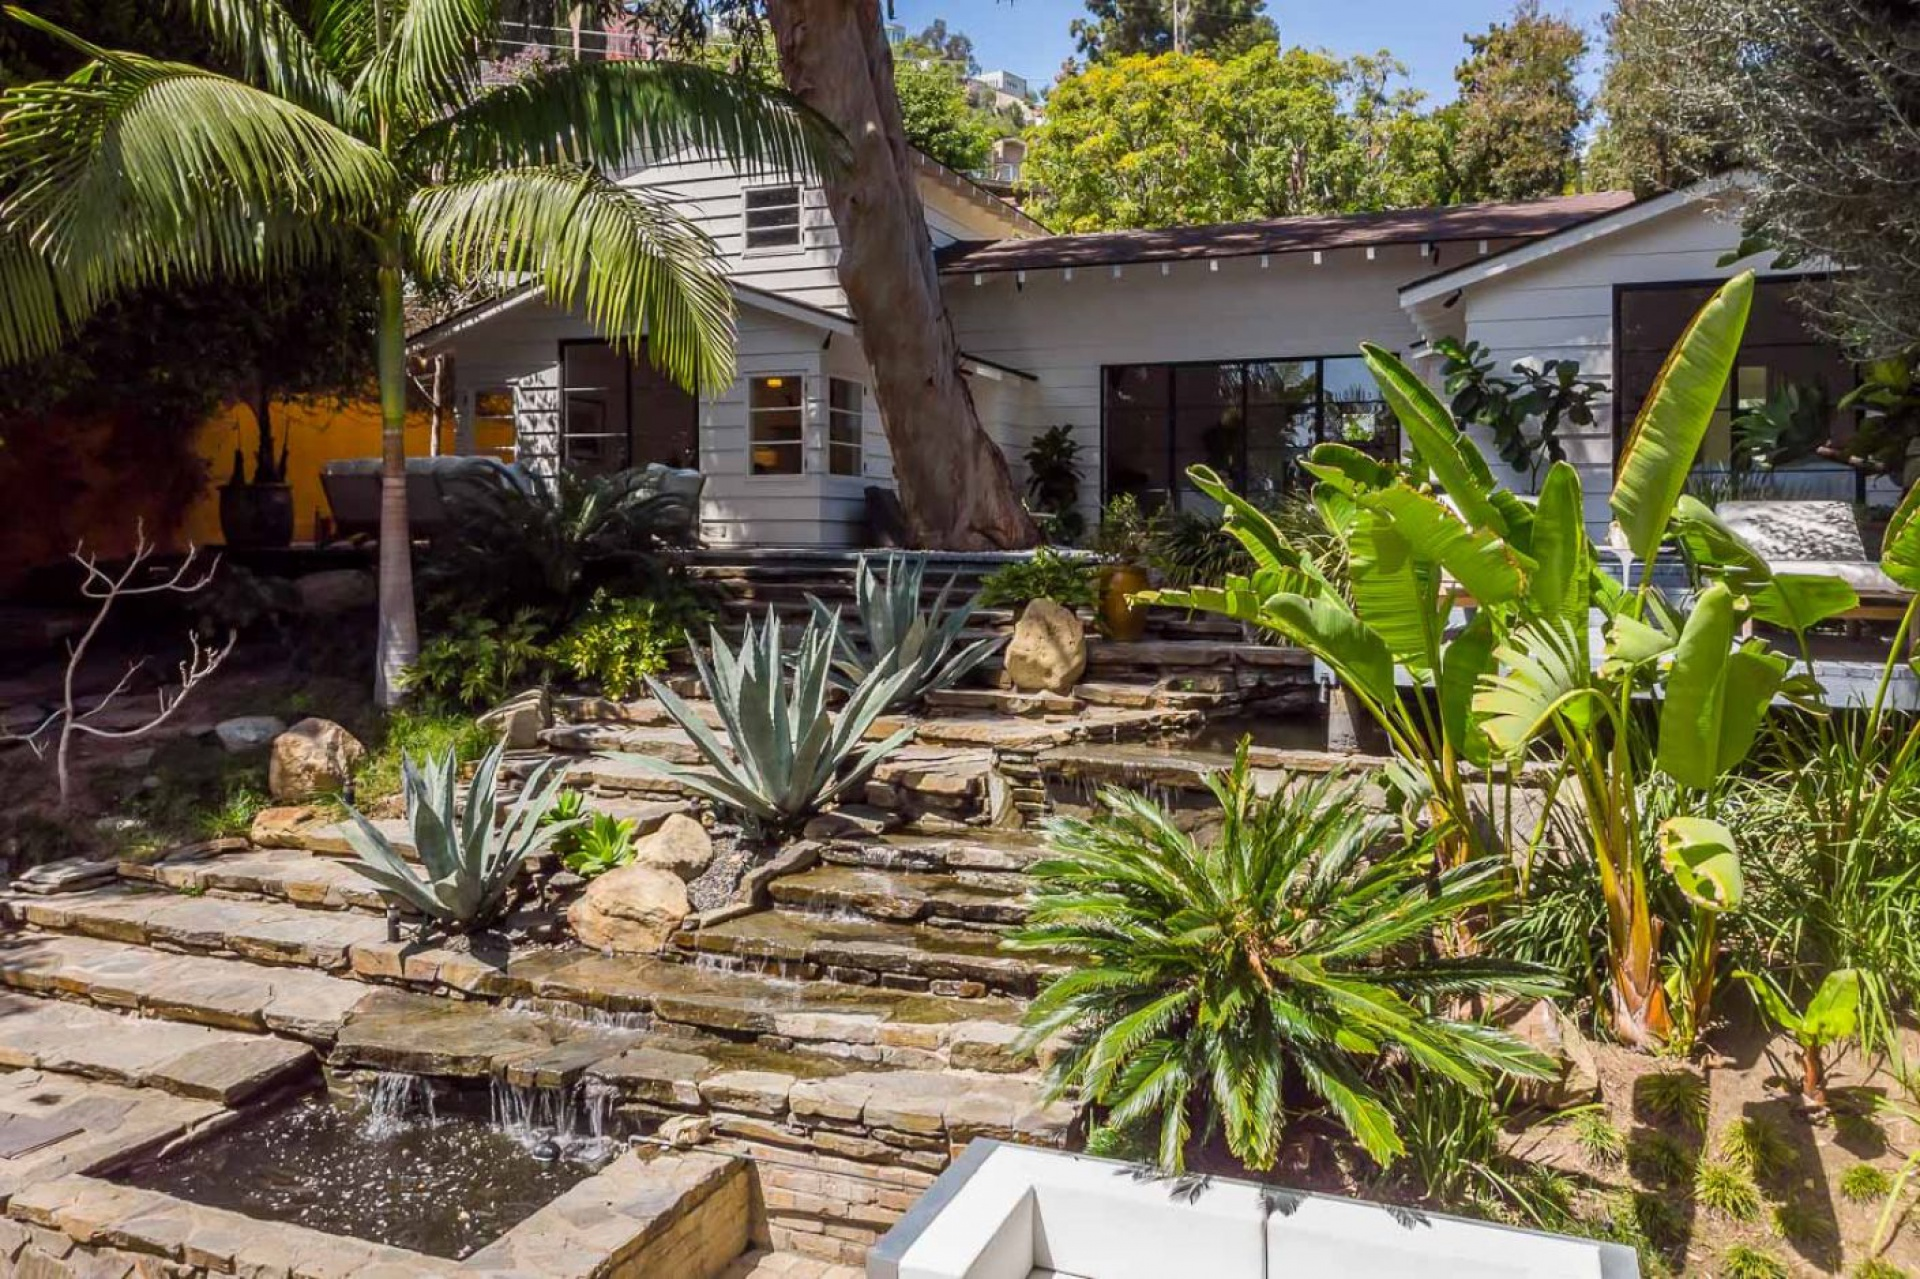 8814 Evanview Drive     |     Sunset Strip Los Angeles CA  | Jonah Wilson